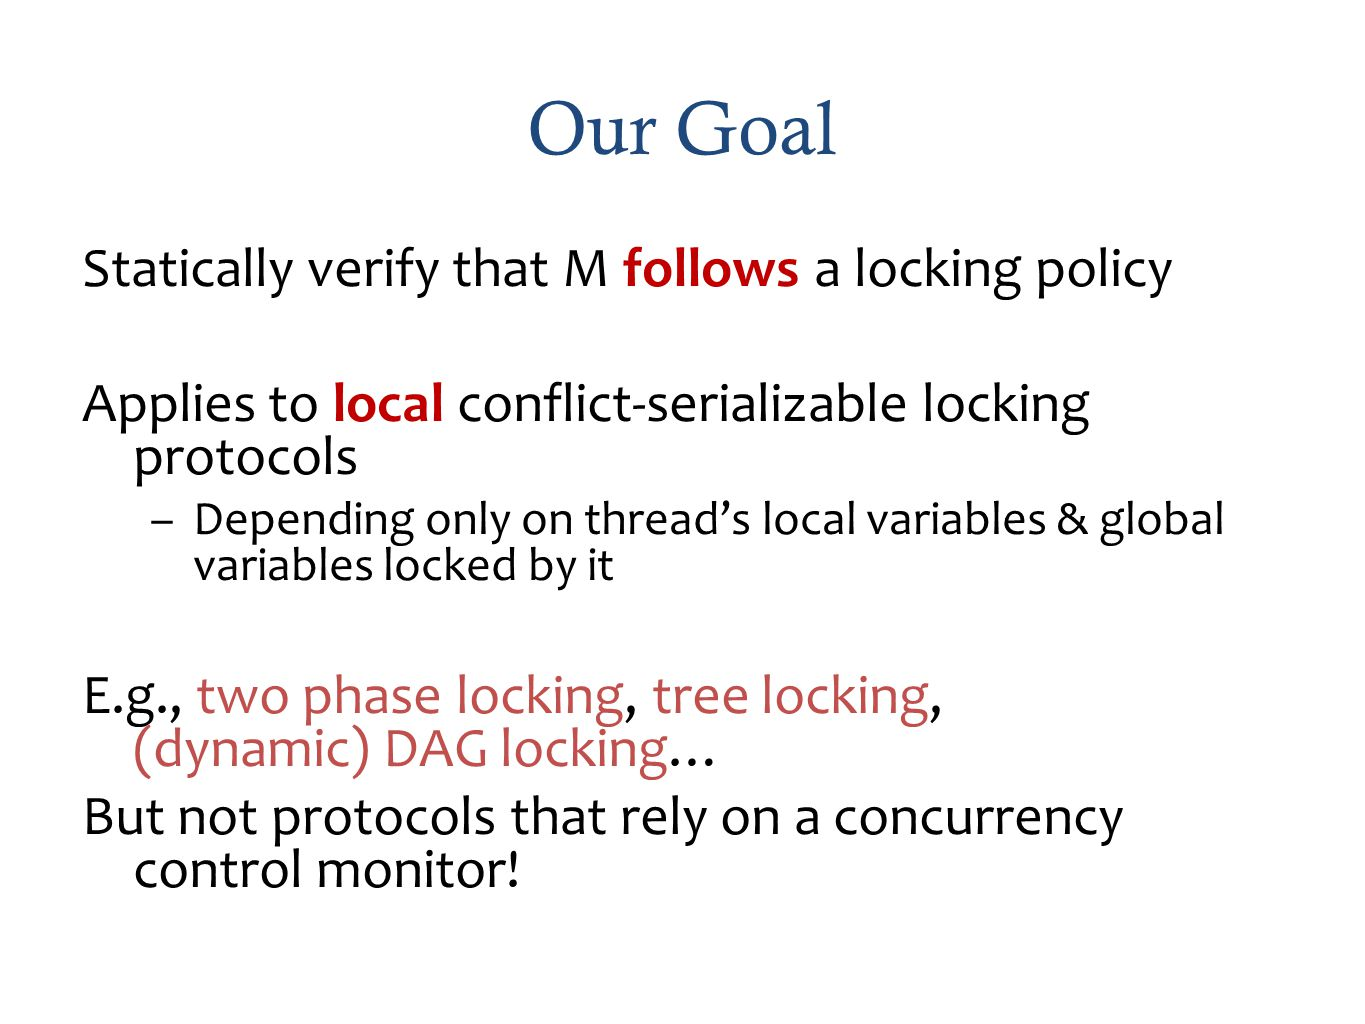 Our Goal Statically verify that M follows a locking policy Applies to local conflict-serializable locking protocols –Depending only on threads local variables & global variables locked by it E.g., two phase locking, tree locking, (dynamic) DAG locking… But not protocols that rely on a concurrency control monitor!